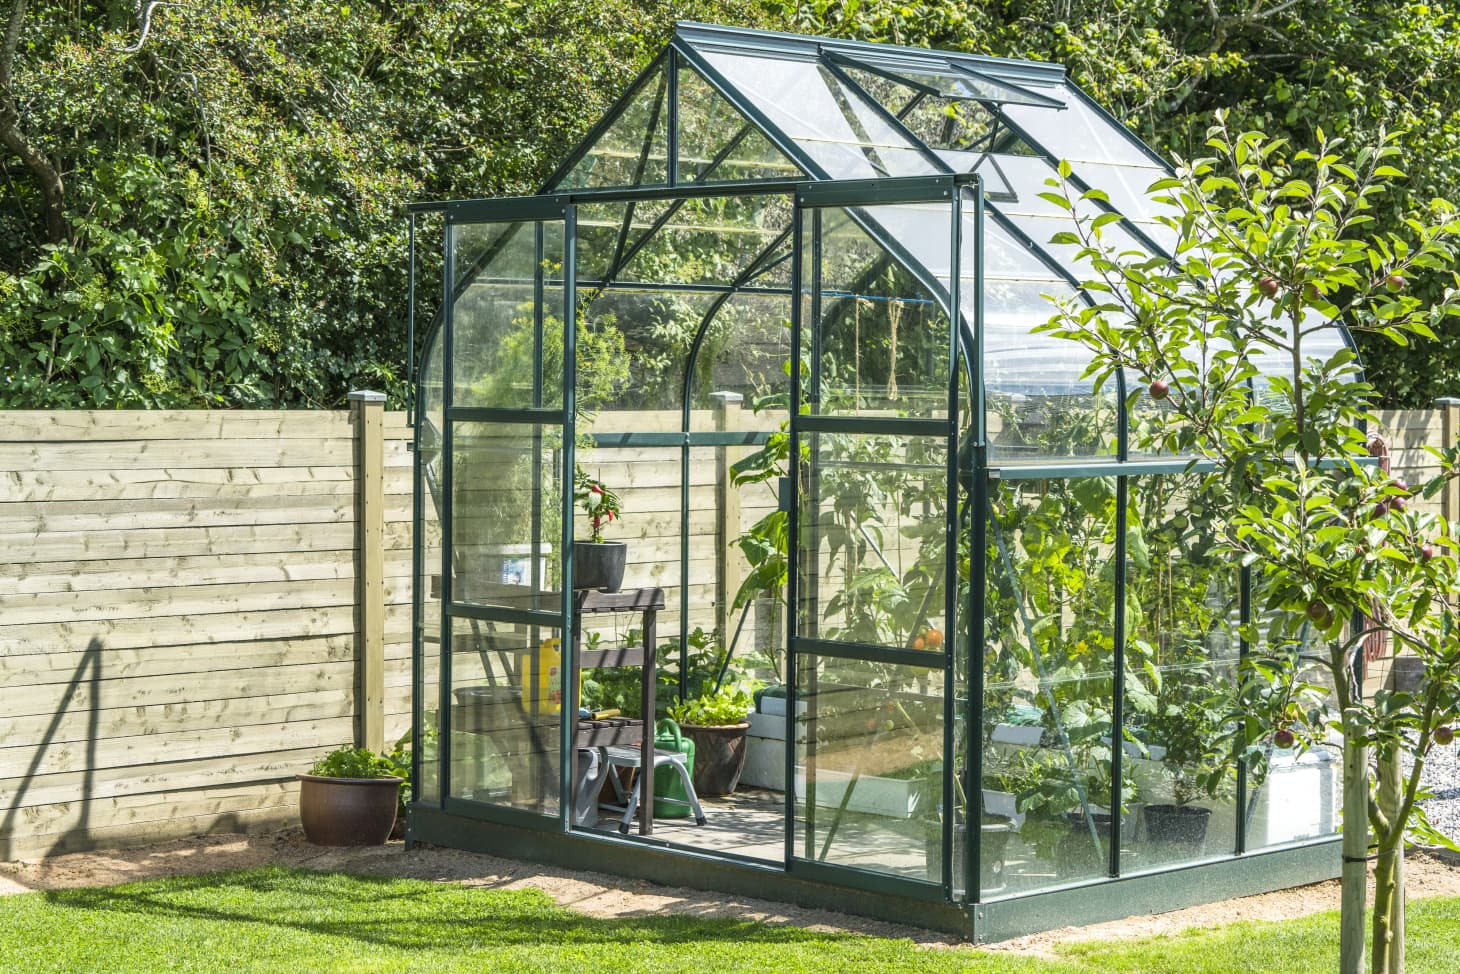 Green House Made of Glass for Custom Glass Projects